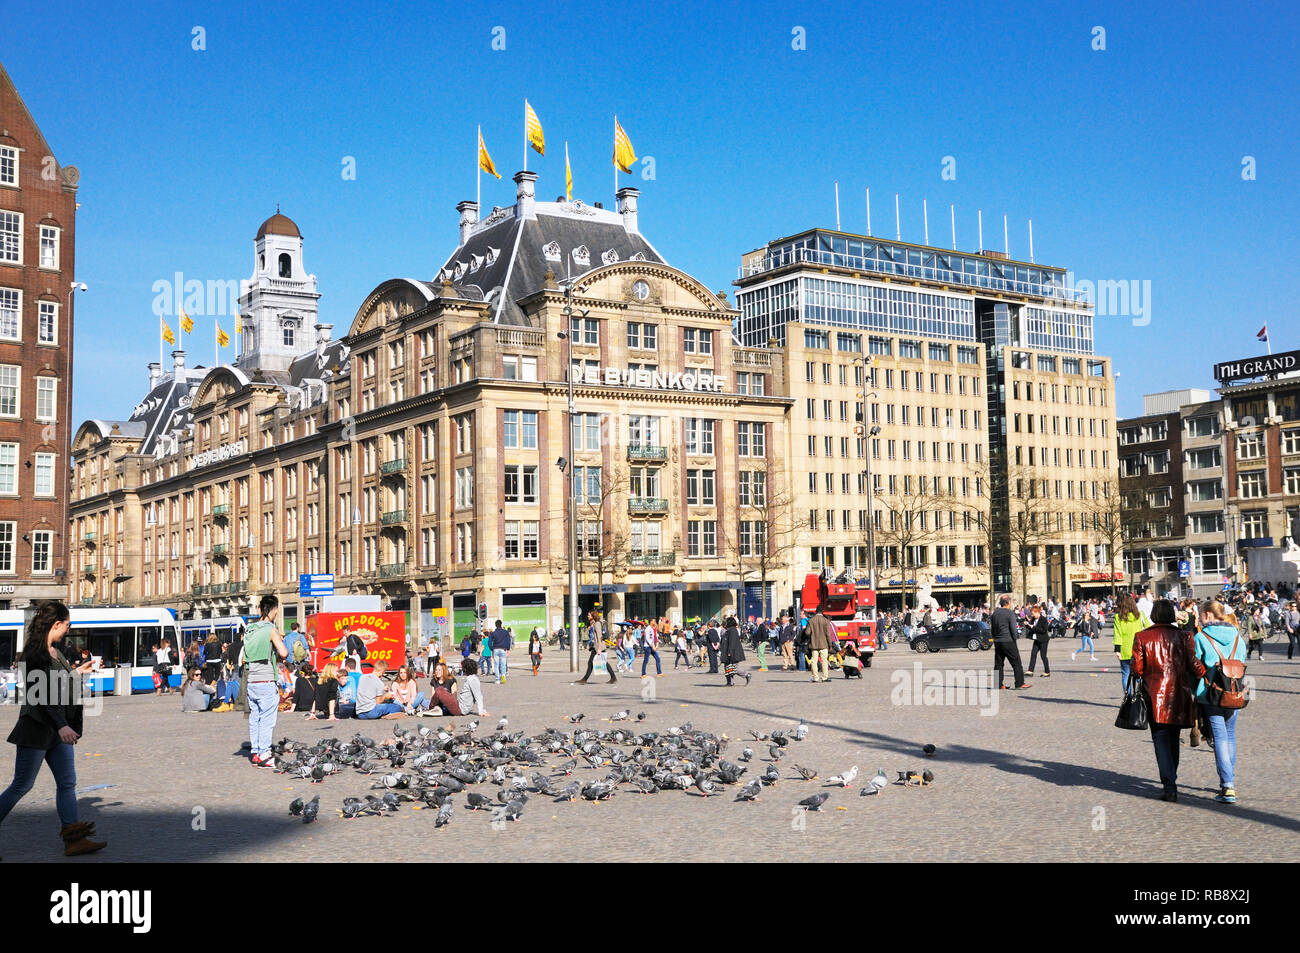 Dam Square and the flagship De Bijenkorf department store, Amsterdam, Netherlands - Stock Image